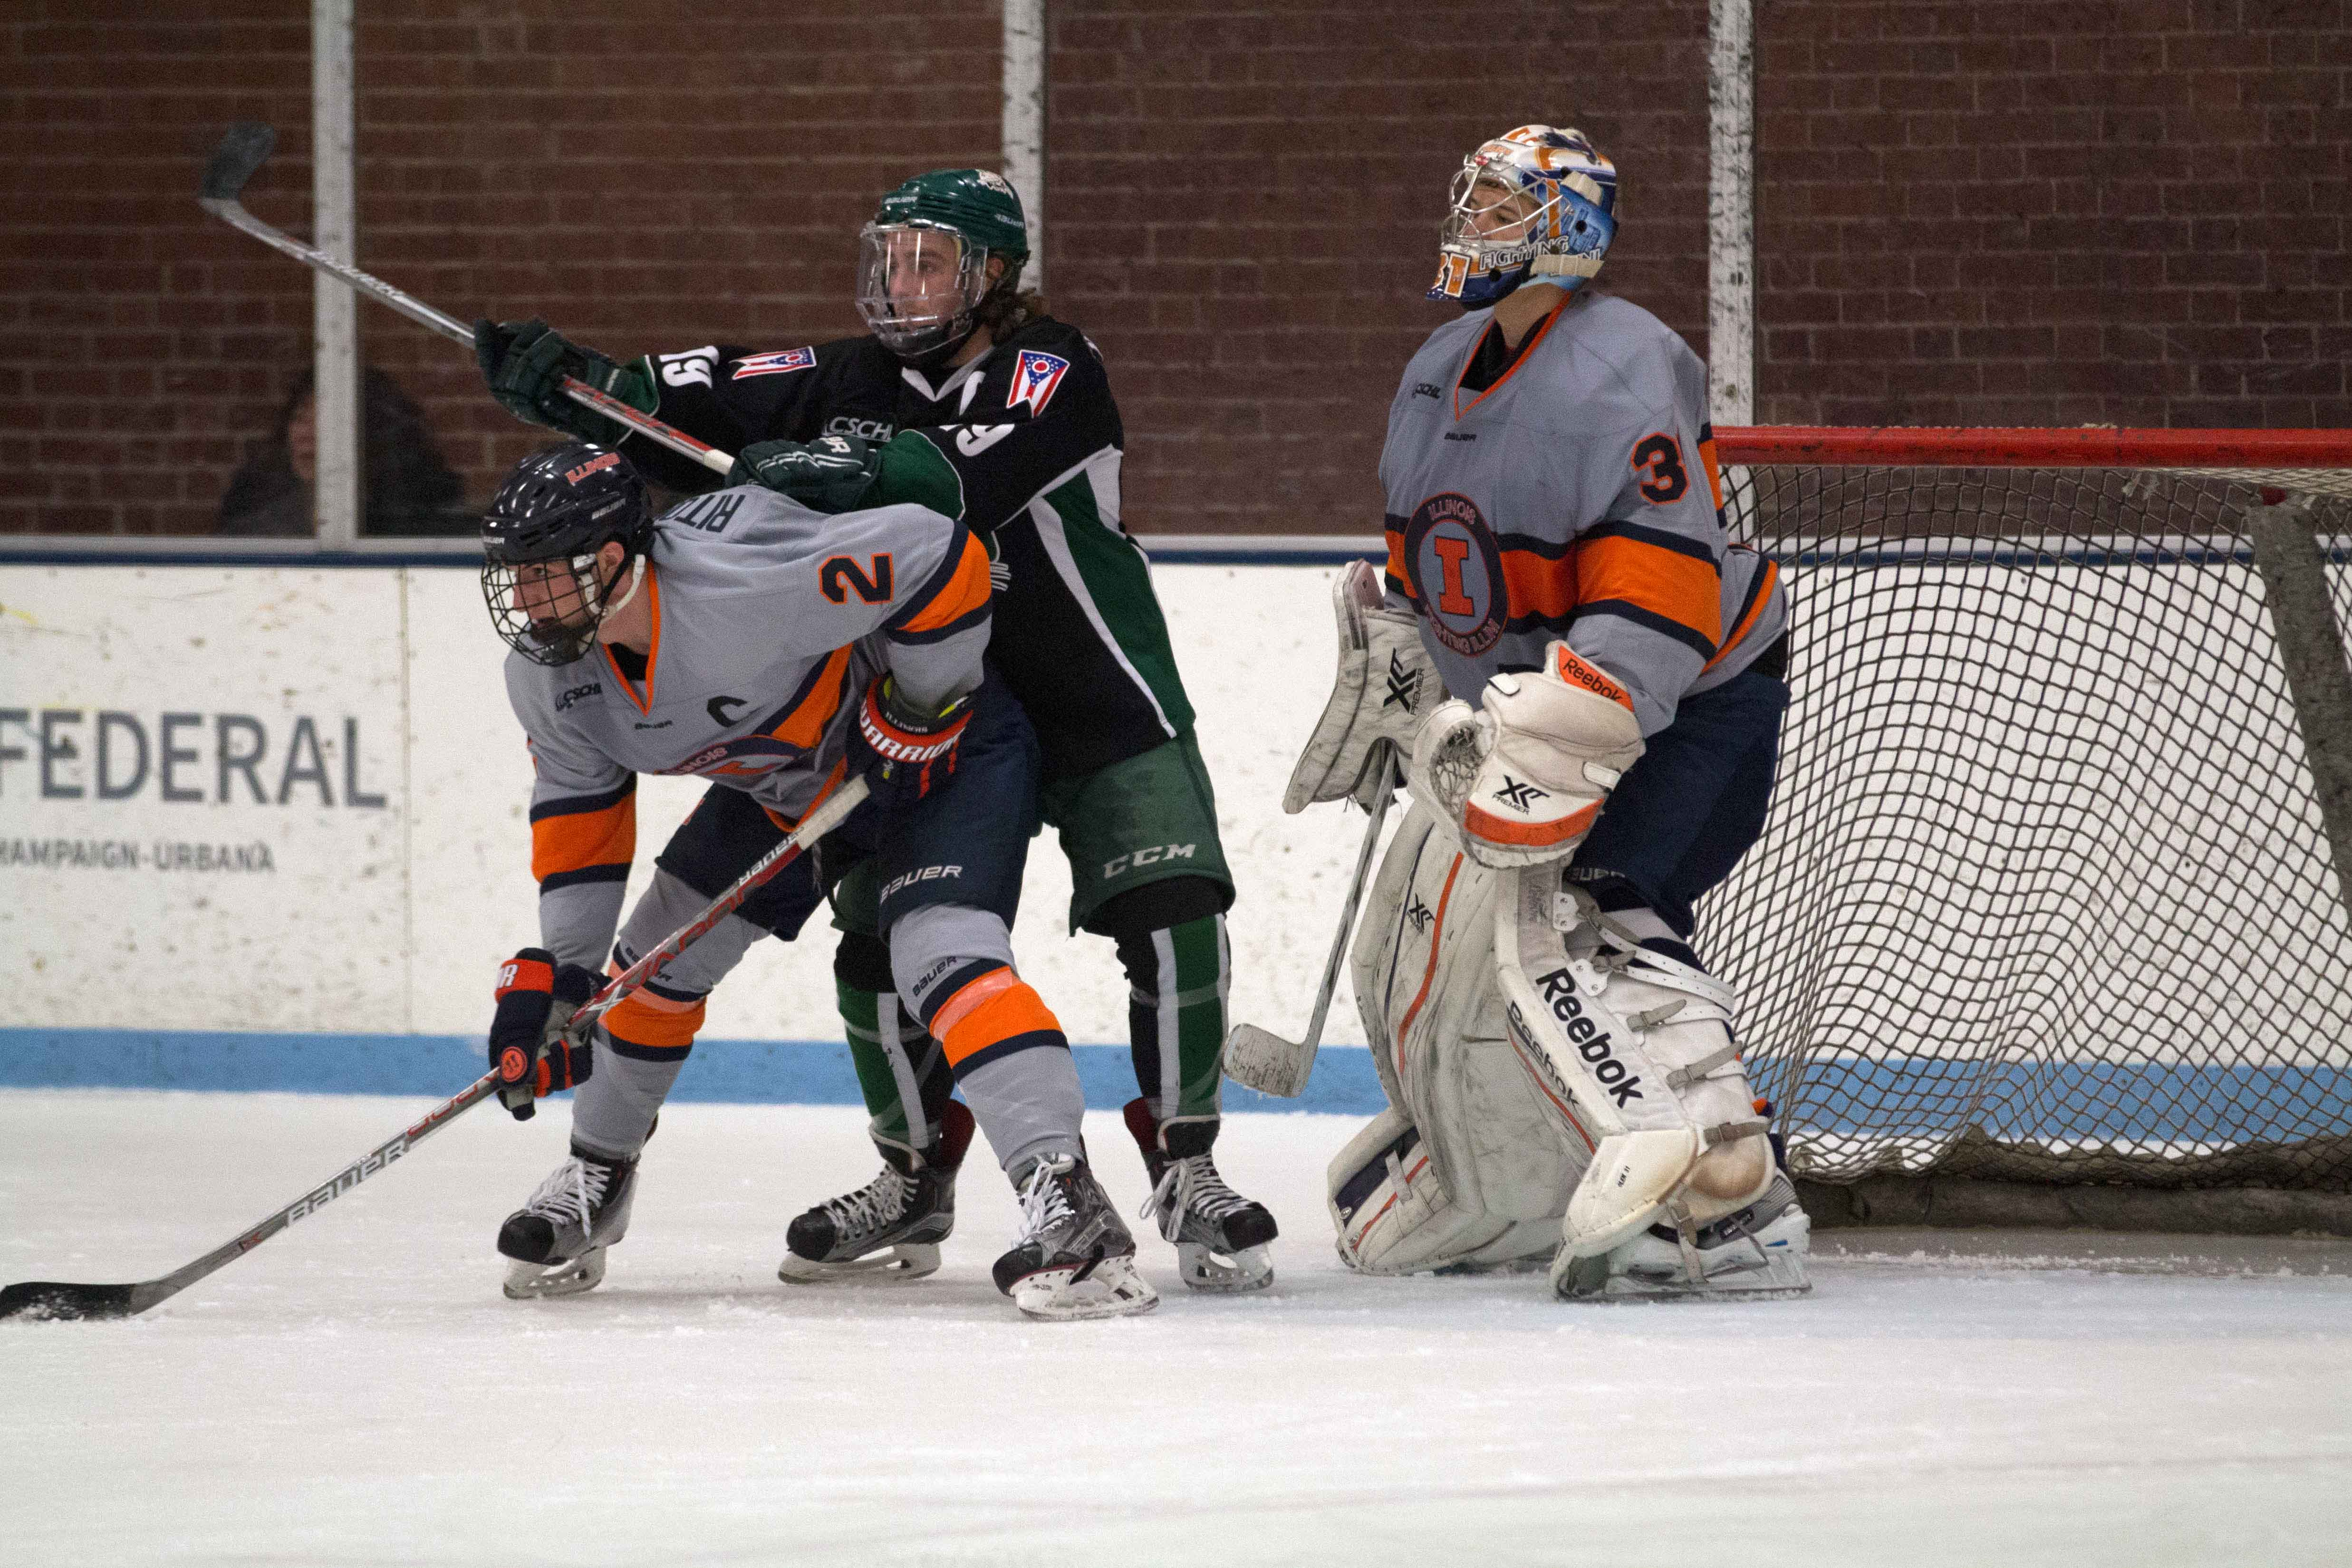 Joey Ritondale (2) fights off Ohio's forward at the Ice Arena on Saturday. The Illini fell to Ohio, 4-1.